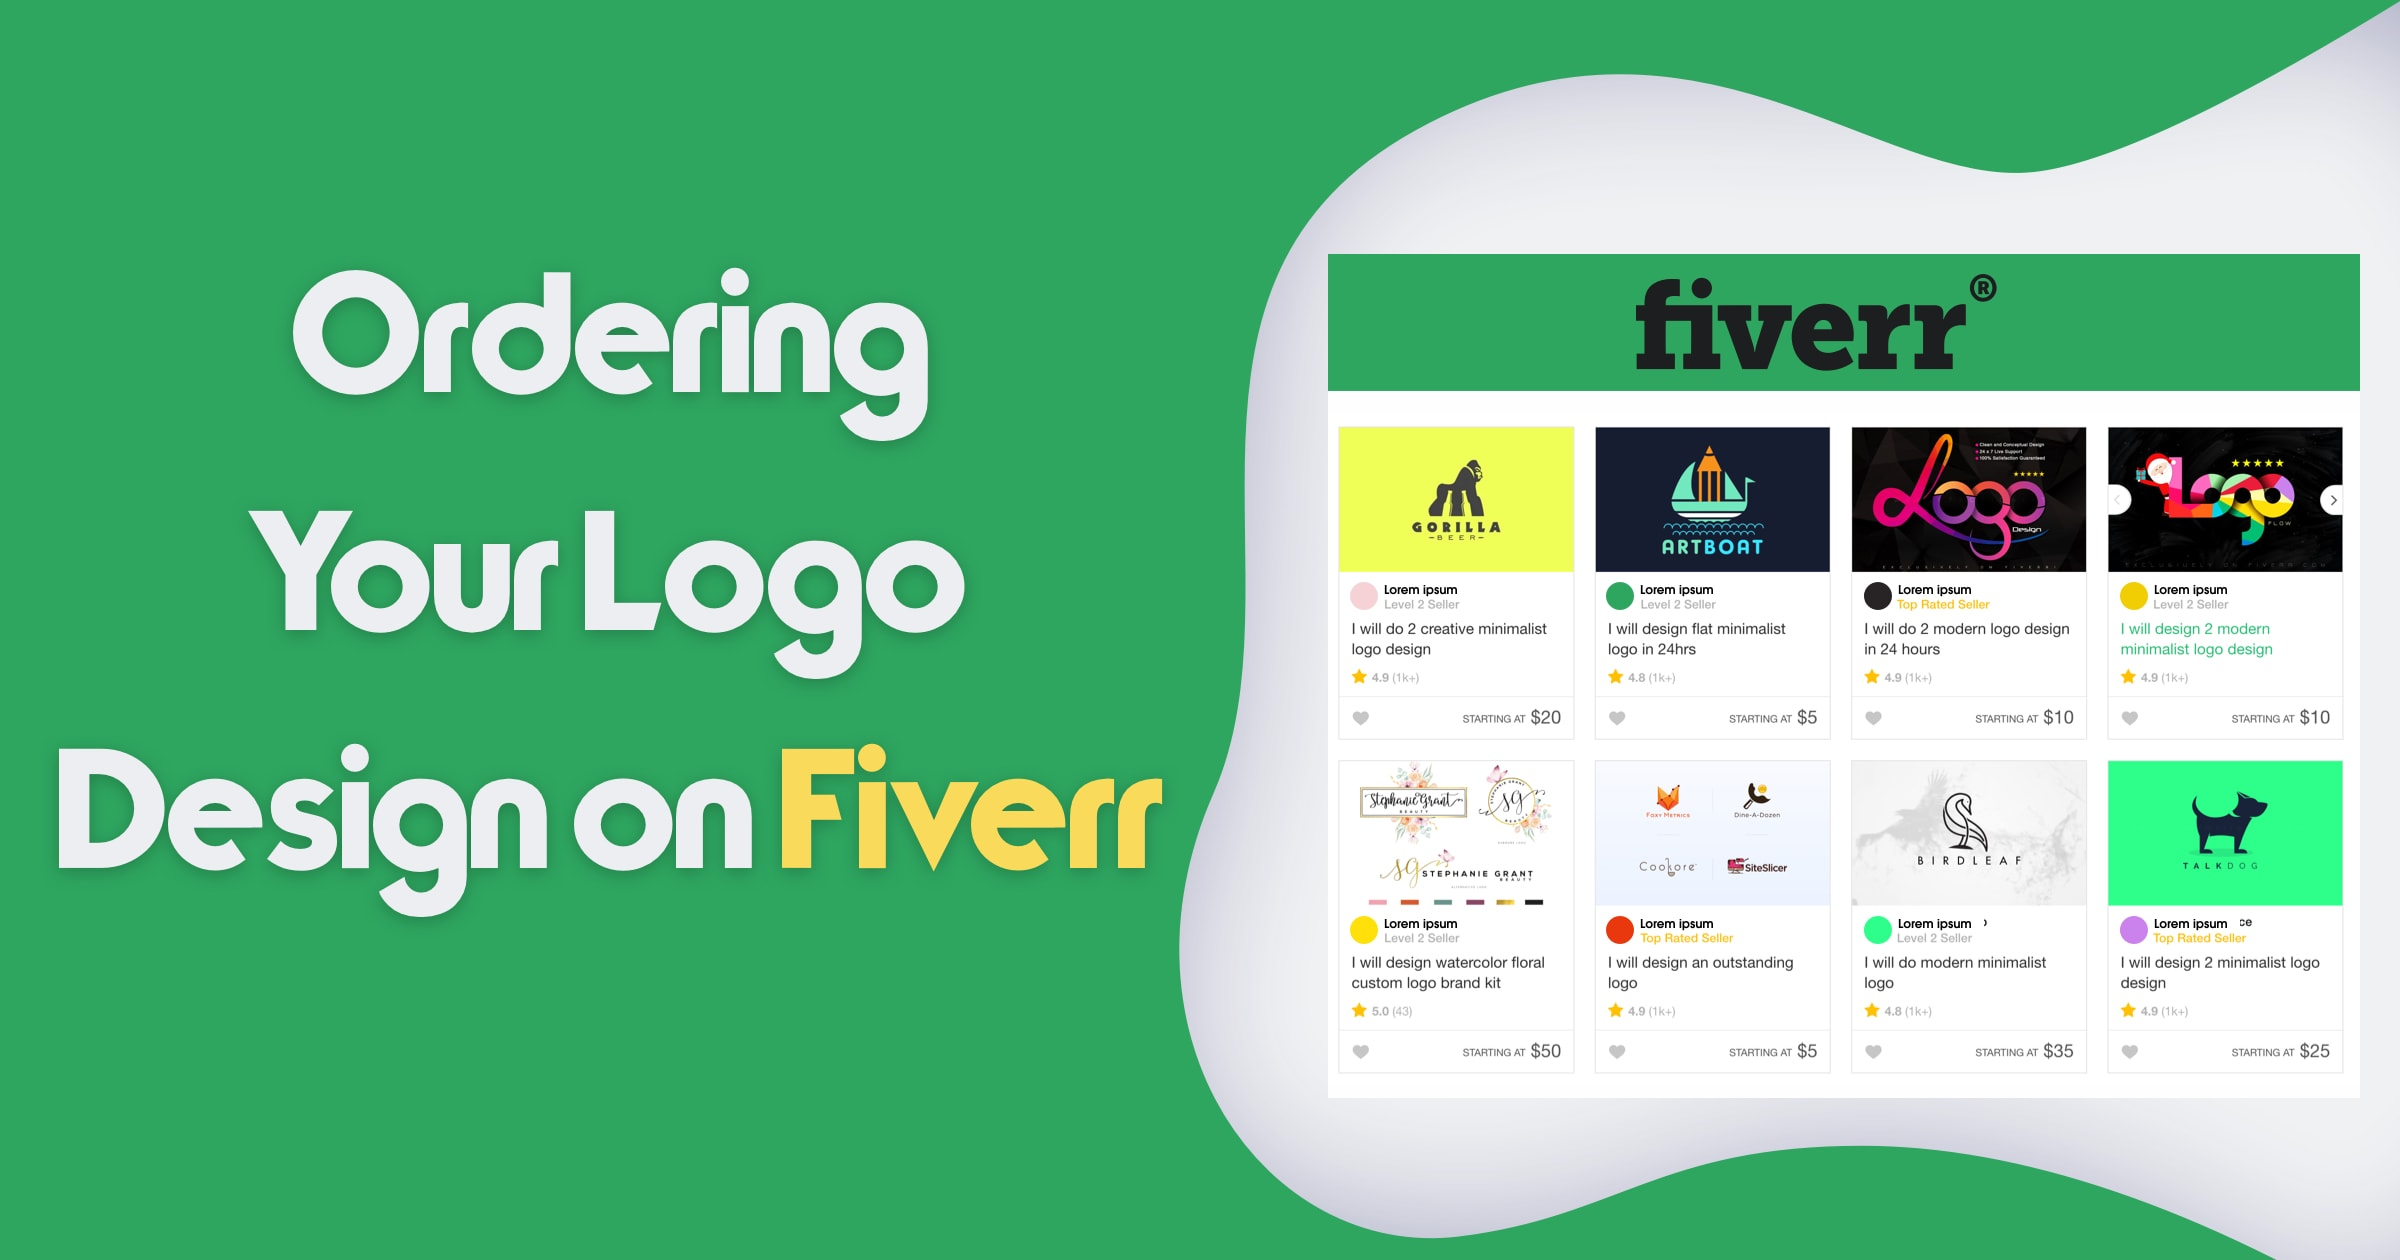 How To Outsource Logo Design On Fiverr?